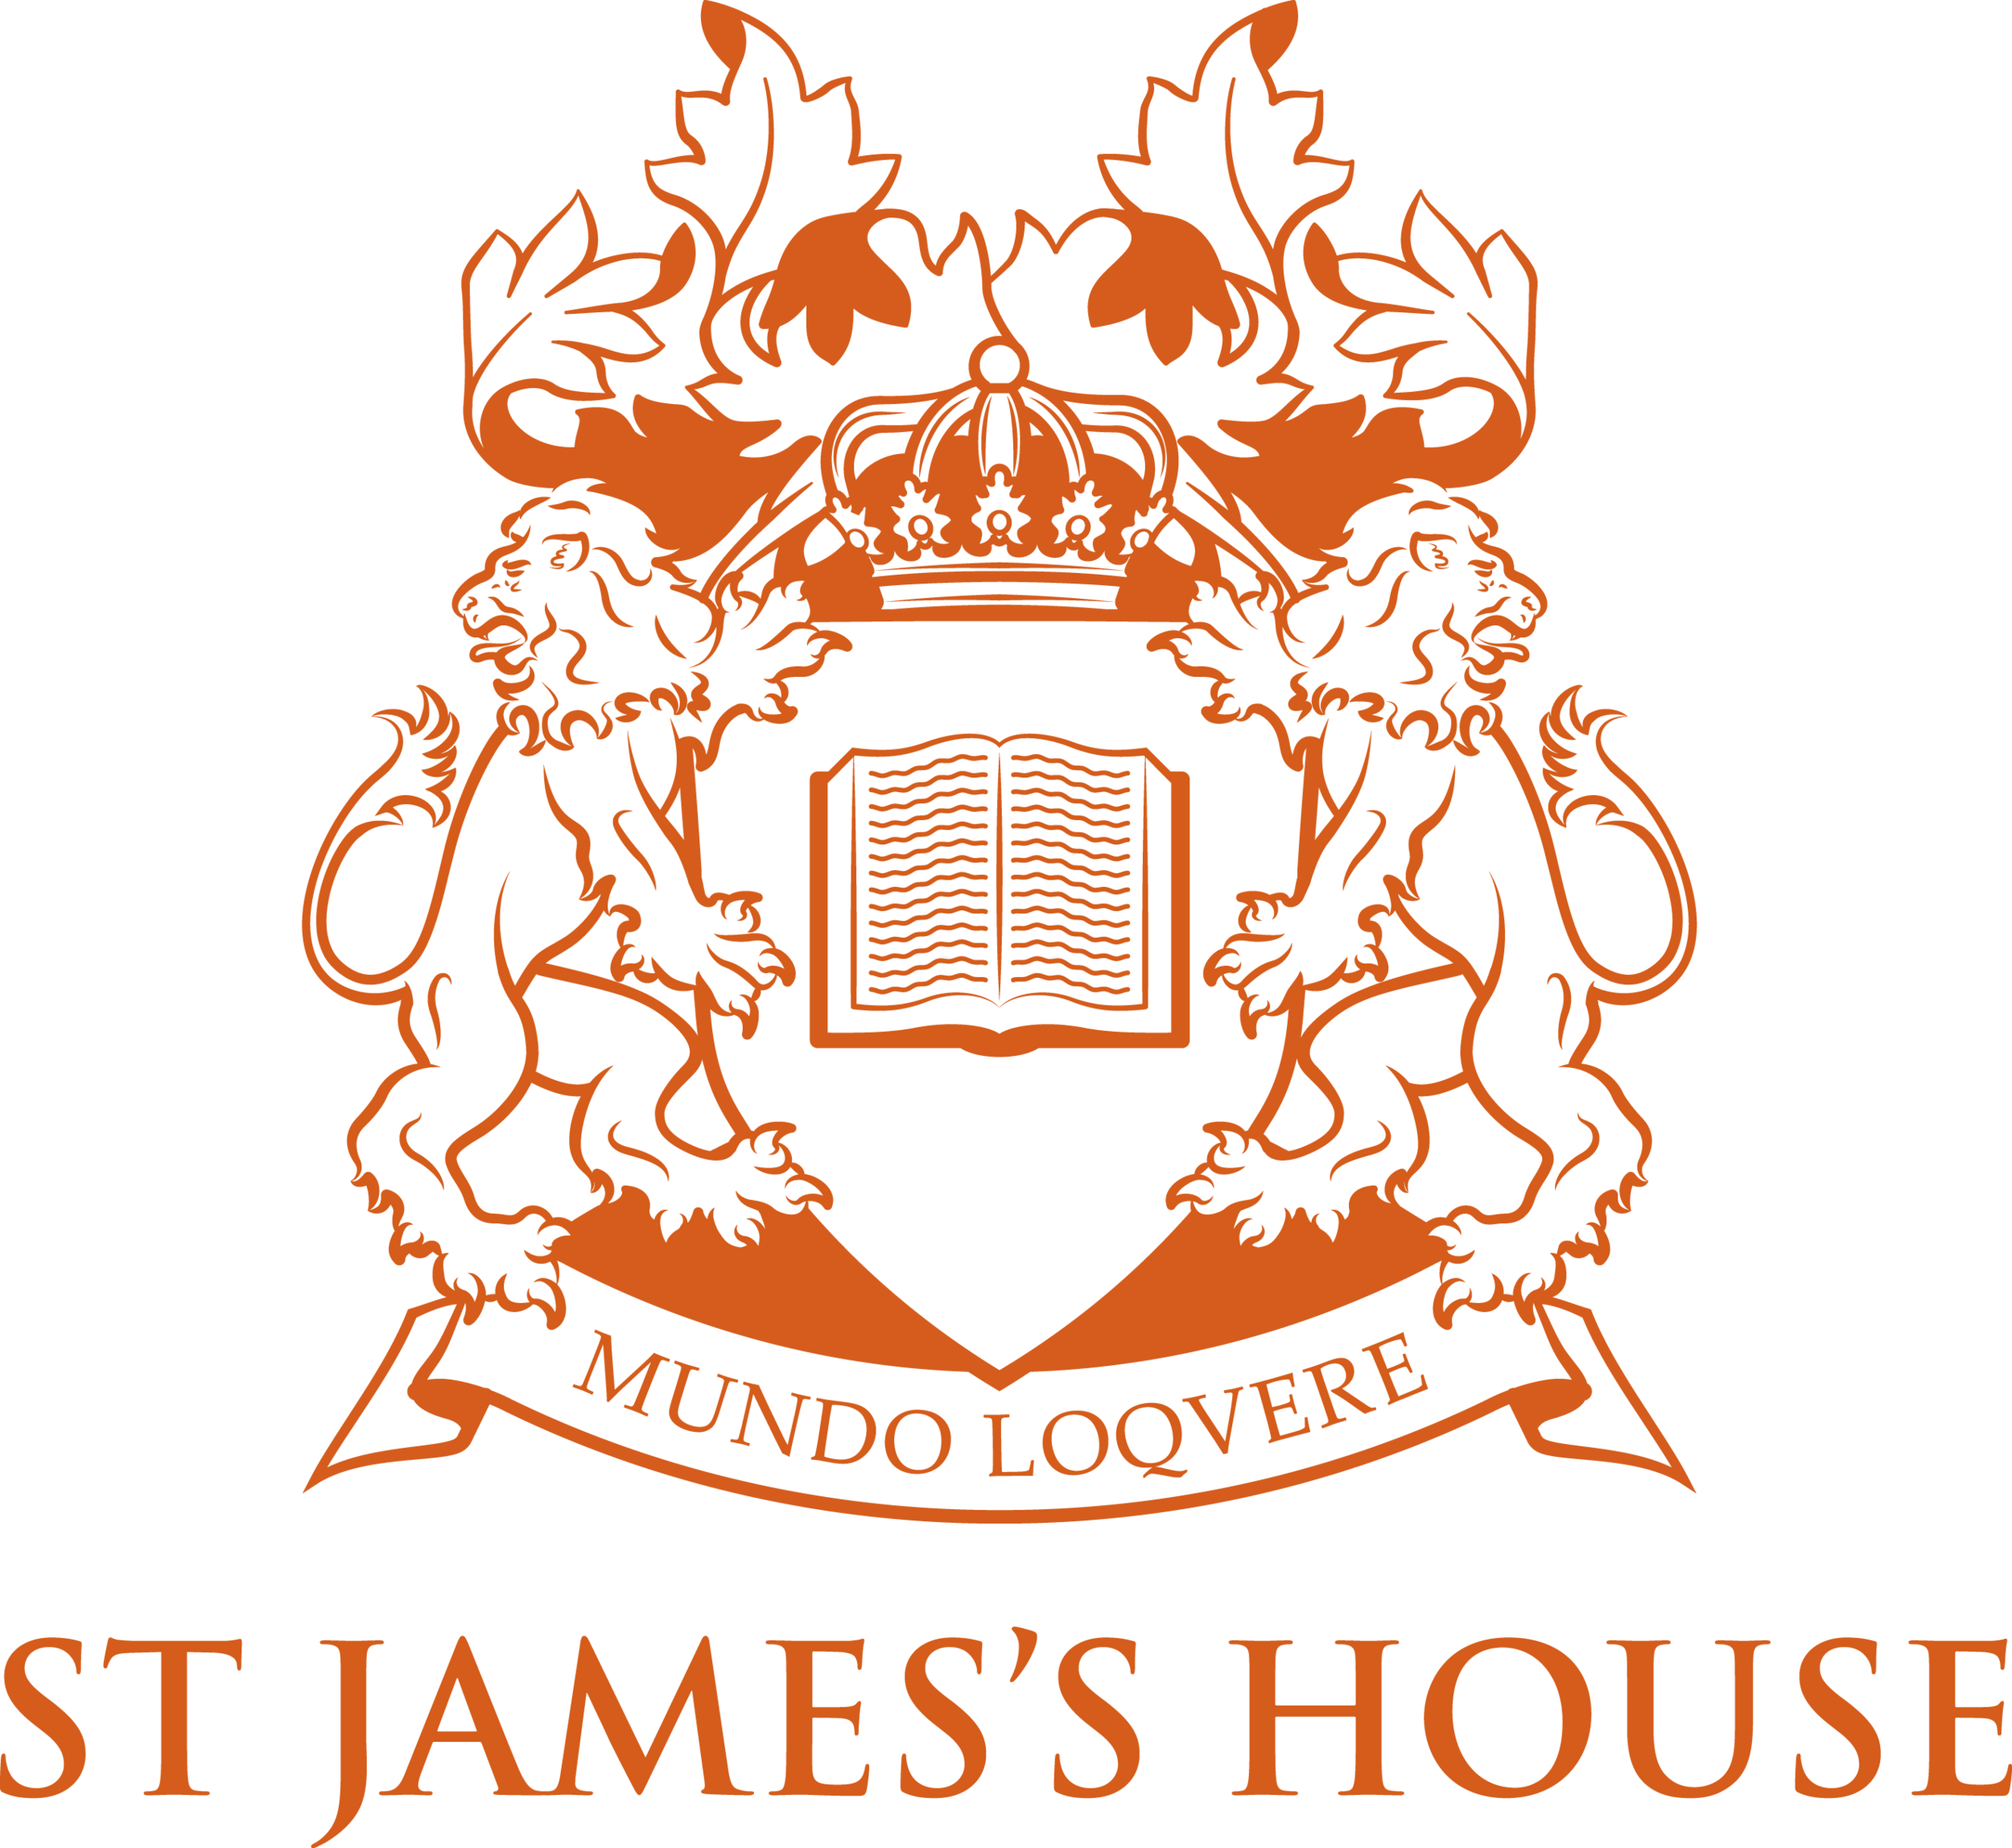 St. James's House